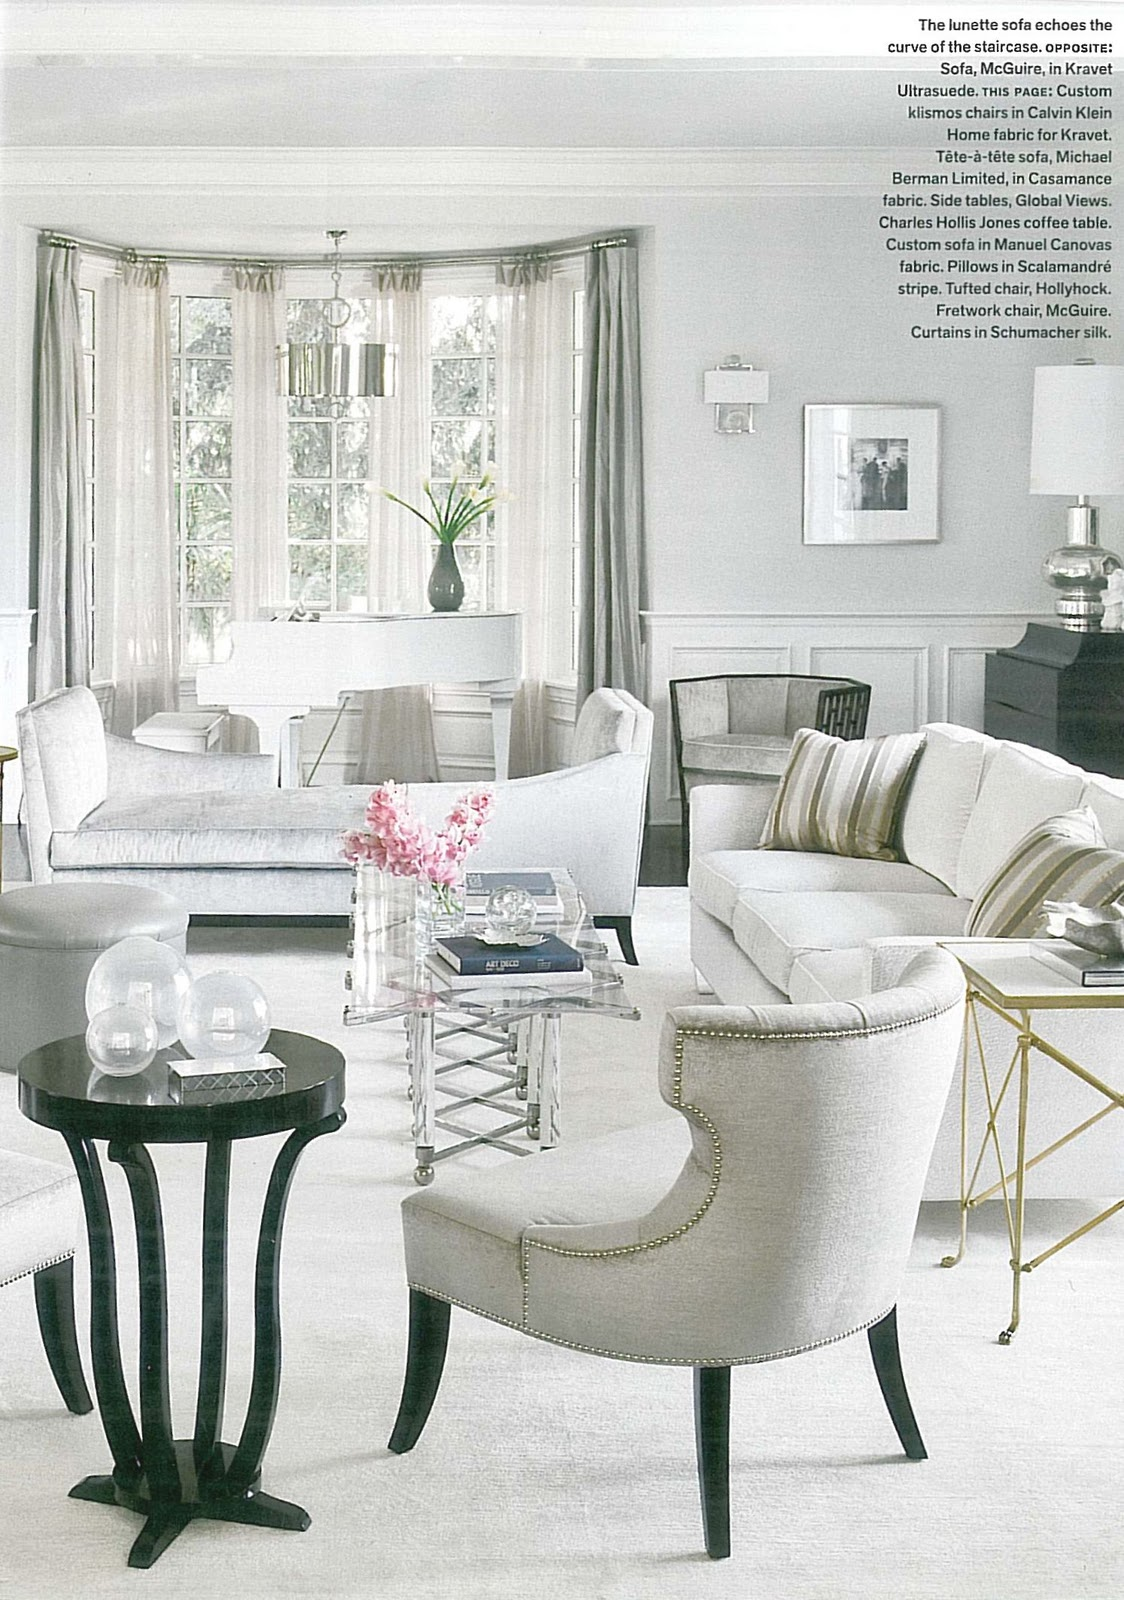 Directoire Tables in Jennifer Lopezs Home Featured in